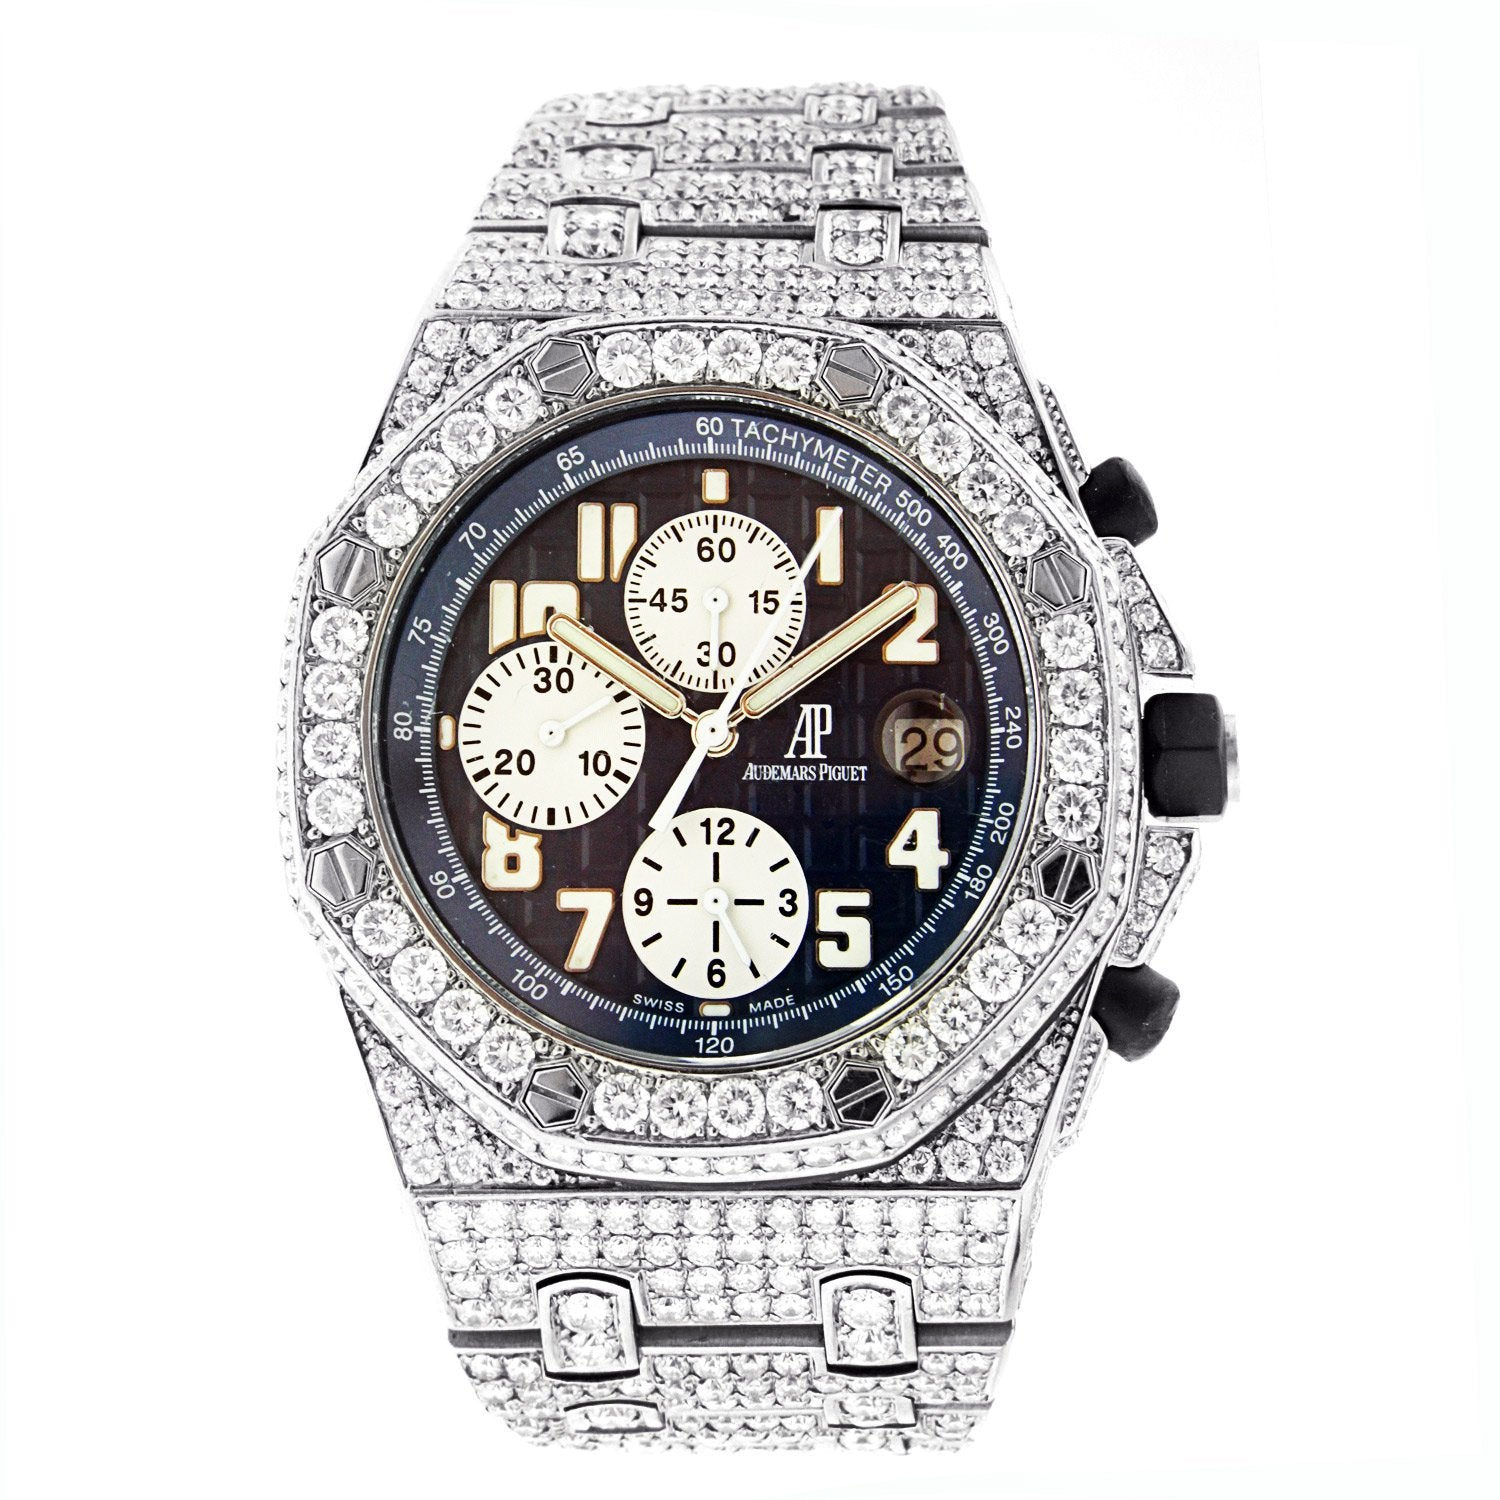 Audemars Piguet Royal Oak Offshore Chronograph with Diamonds 42MM